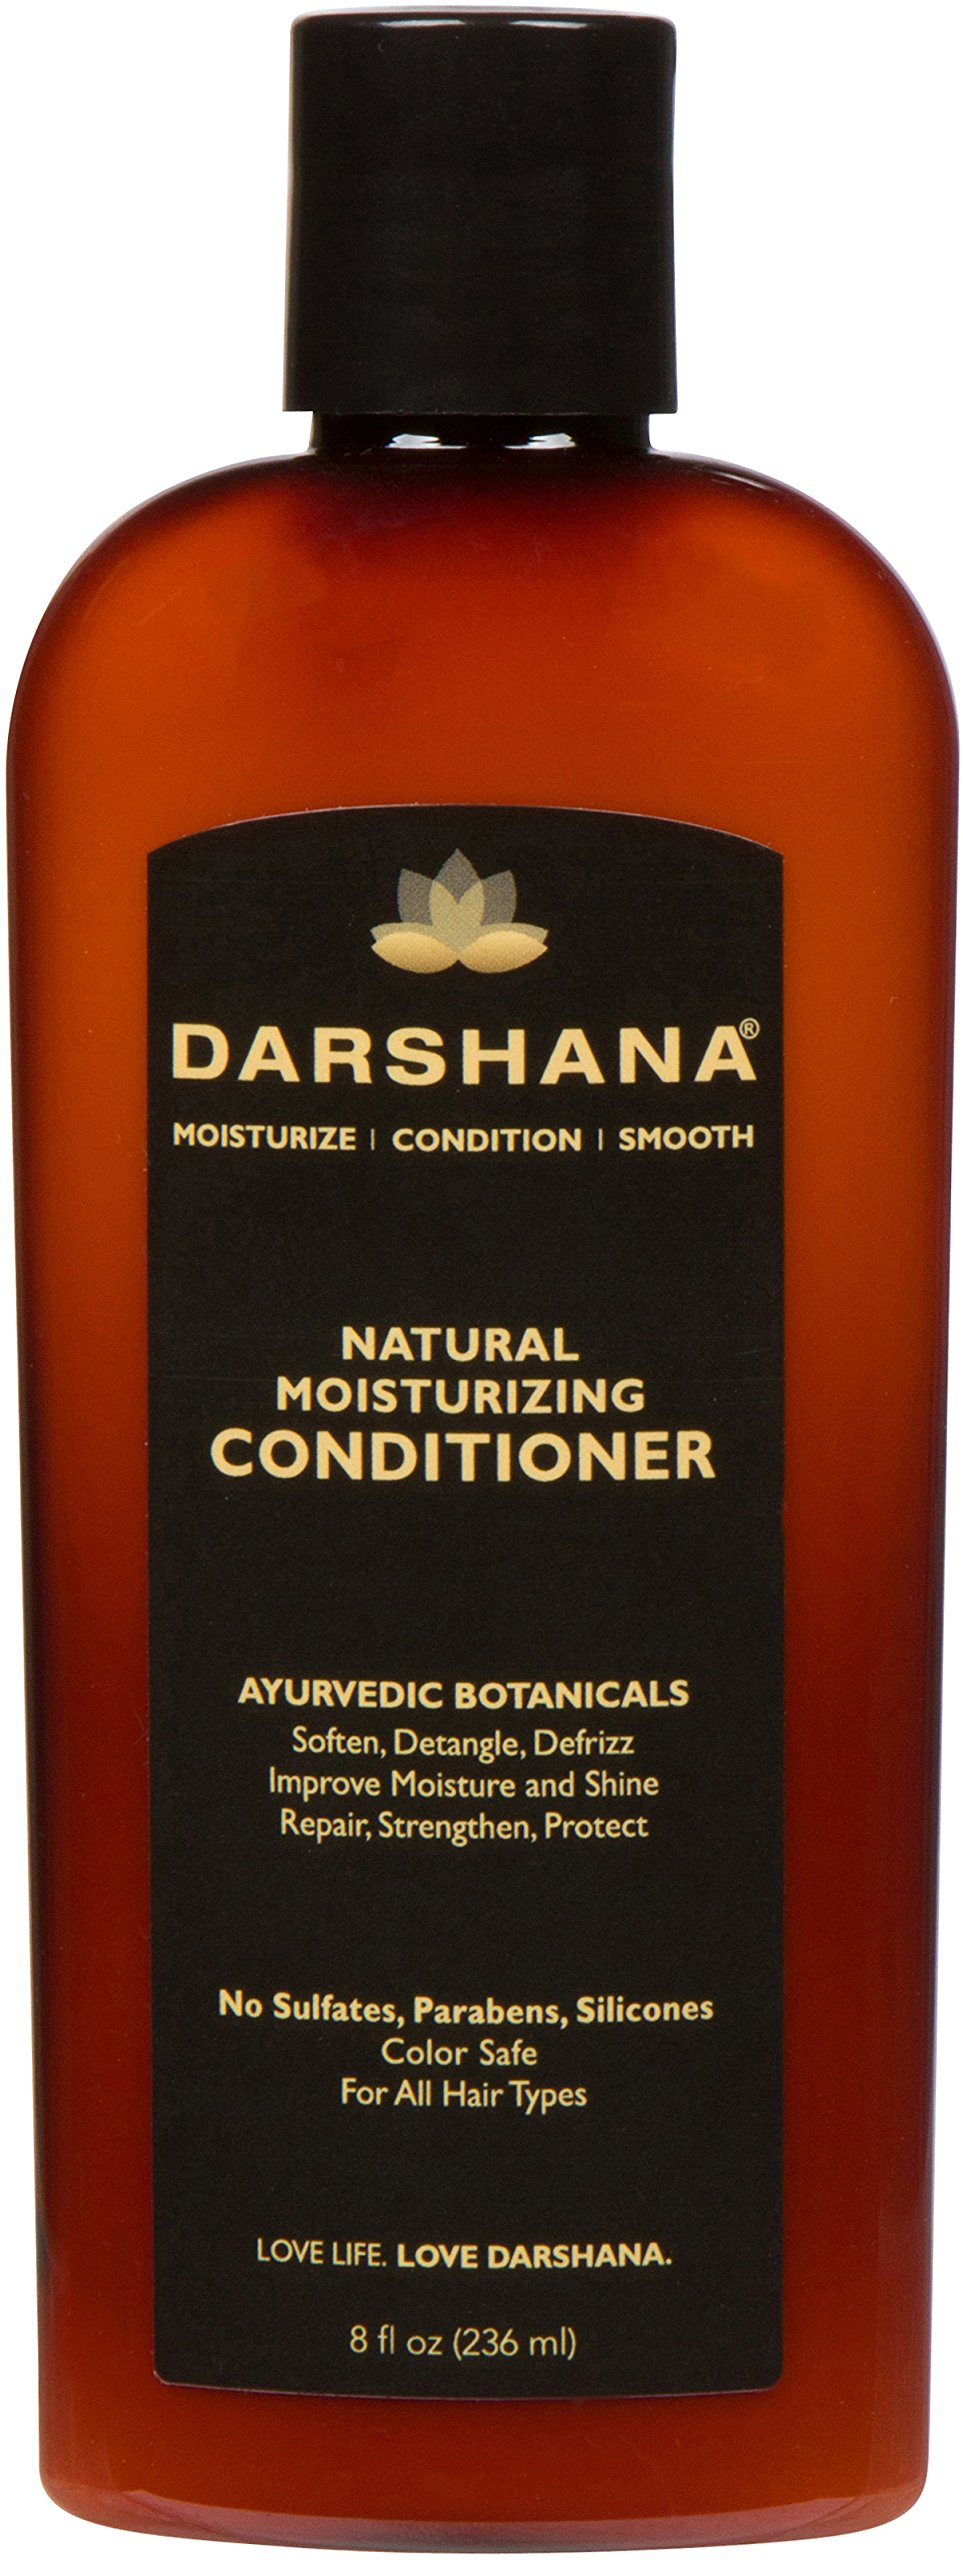 Darshana Natural Moisturizing Conditioner with Ayurvedic Botanicals - Color Safe, No Sulfates, Silicones, Parabens - Soften, Detangle, Defrizz, pH Balanced (8 fl oz.)